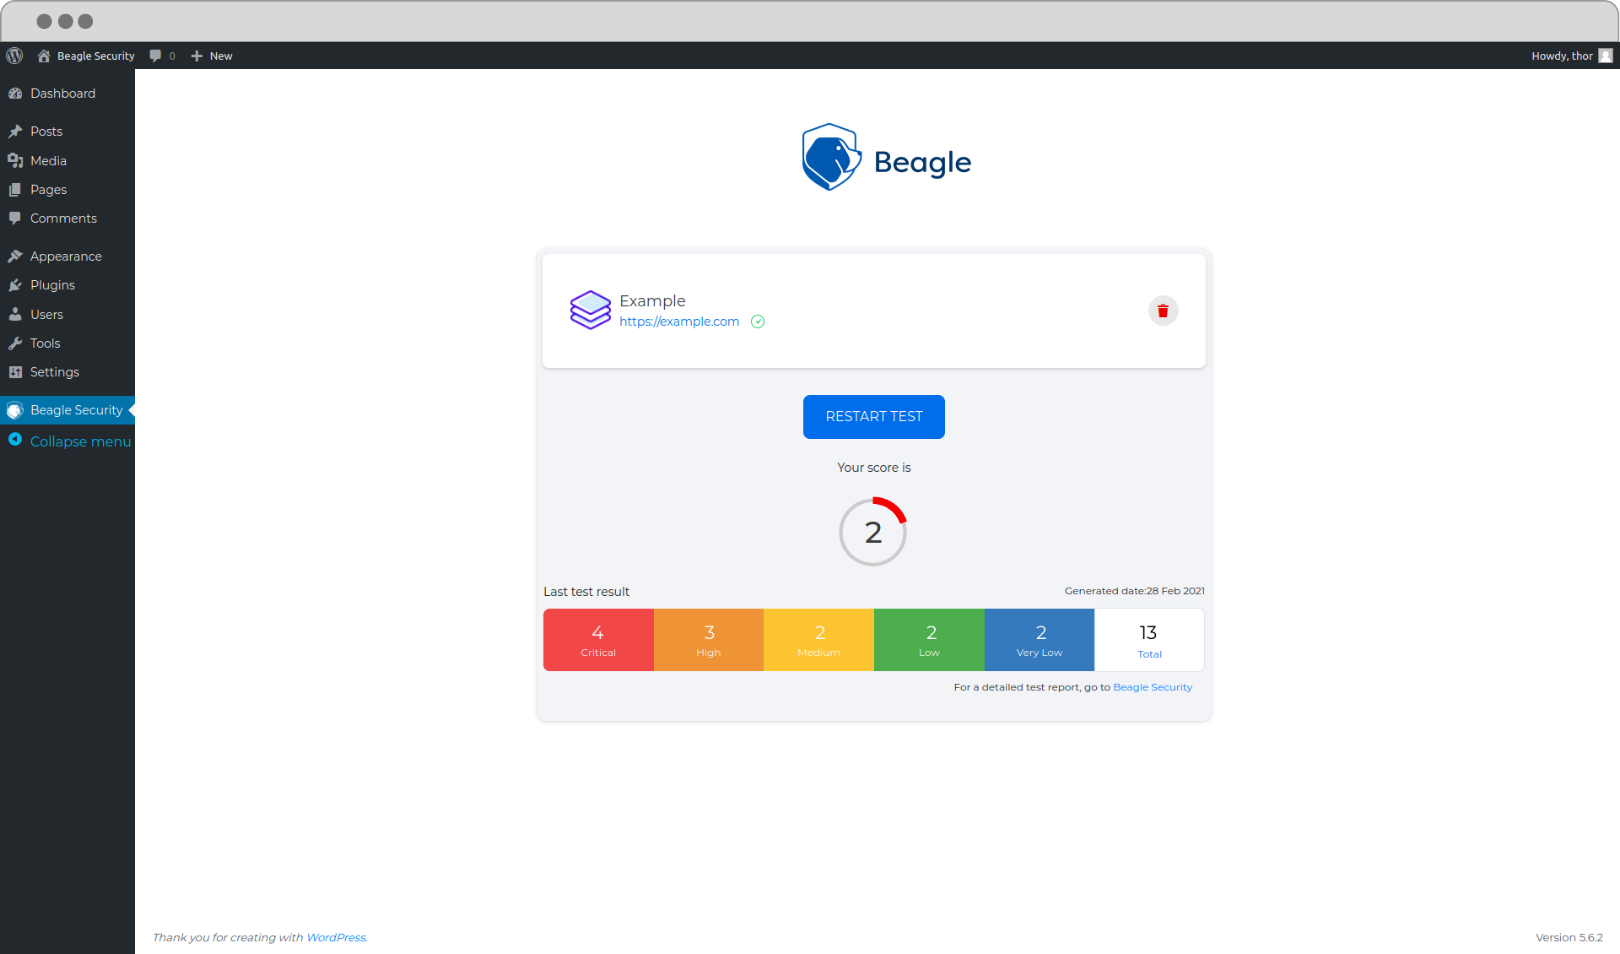 WP Plugin screen